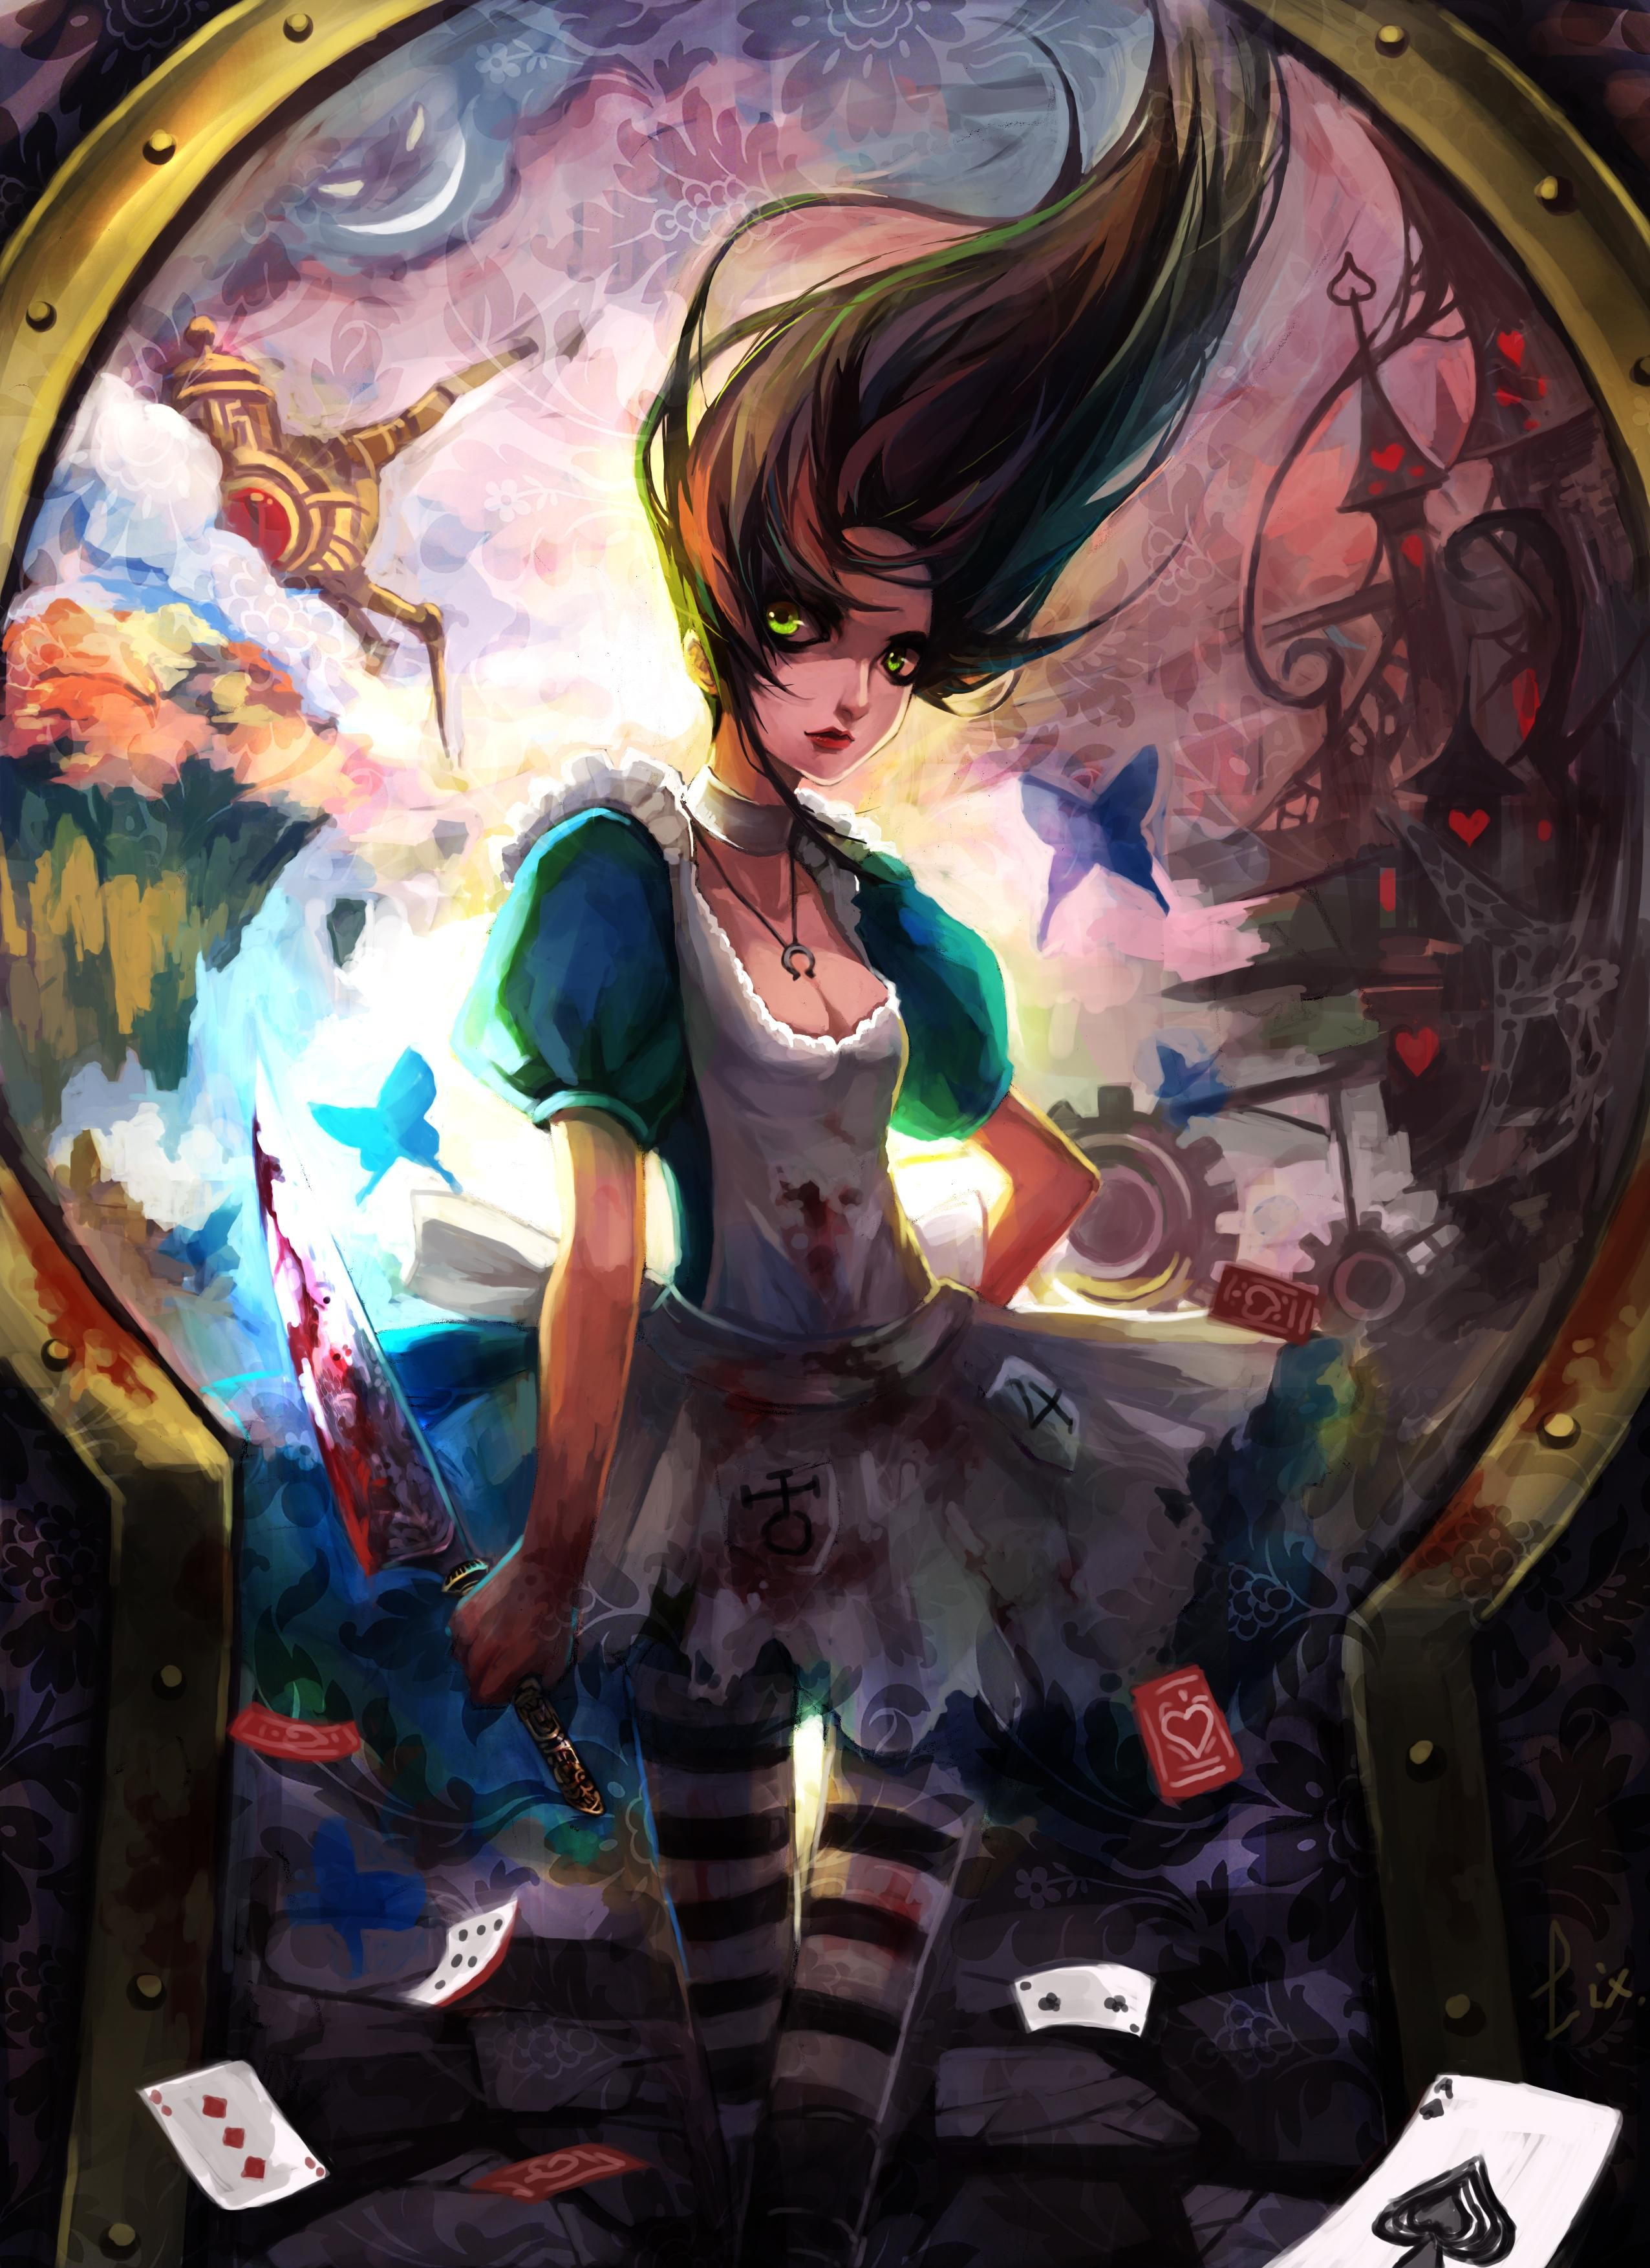 Vorpal blade alice madness HD Wallpaper